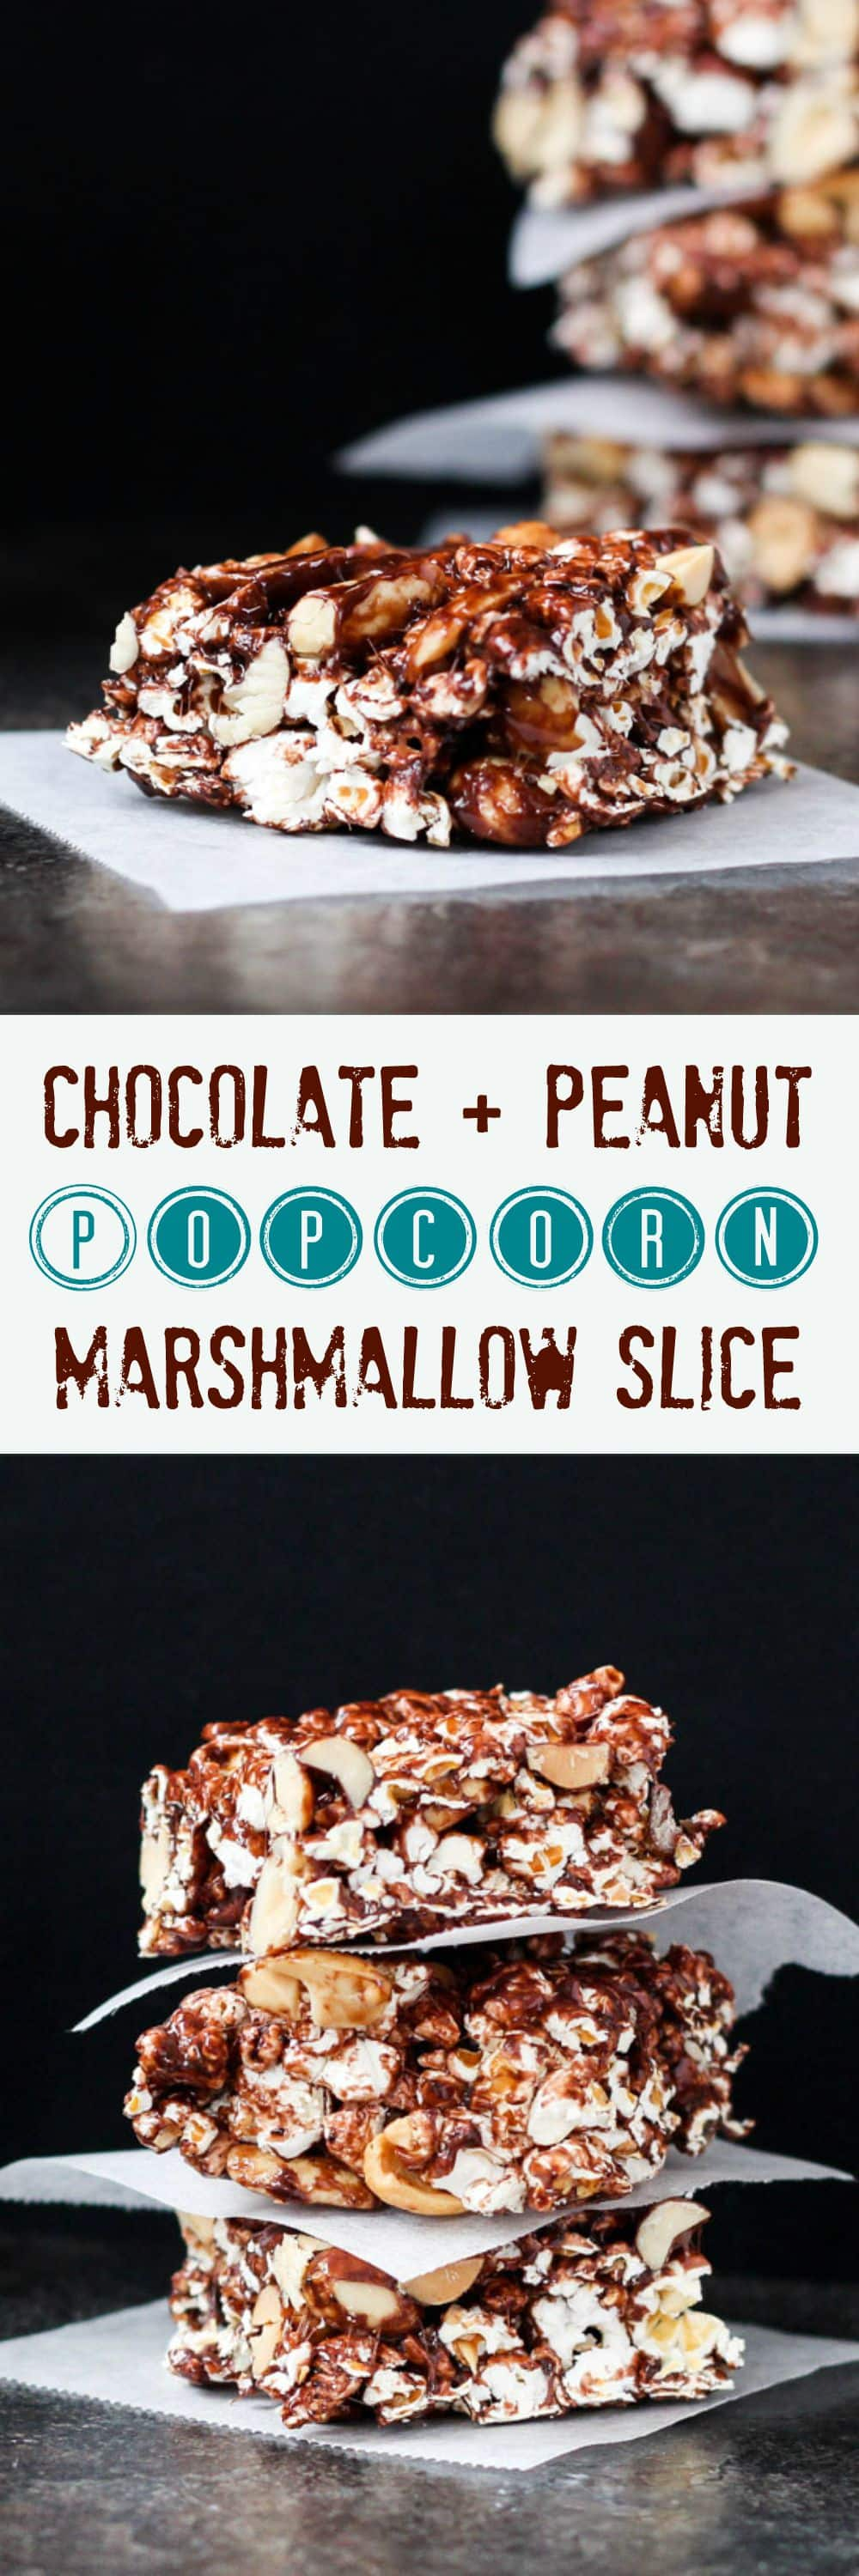 Chocolate & Peanut Popcorn Marshmallow Slice.  A quick & easy slice, full of wholegrain popcorn and homemade chocolate marshmallows.